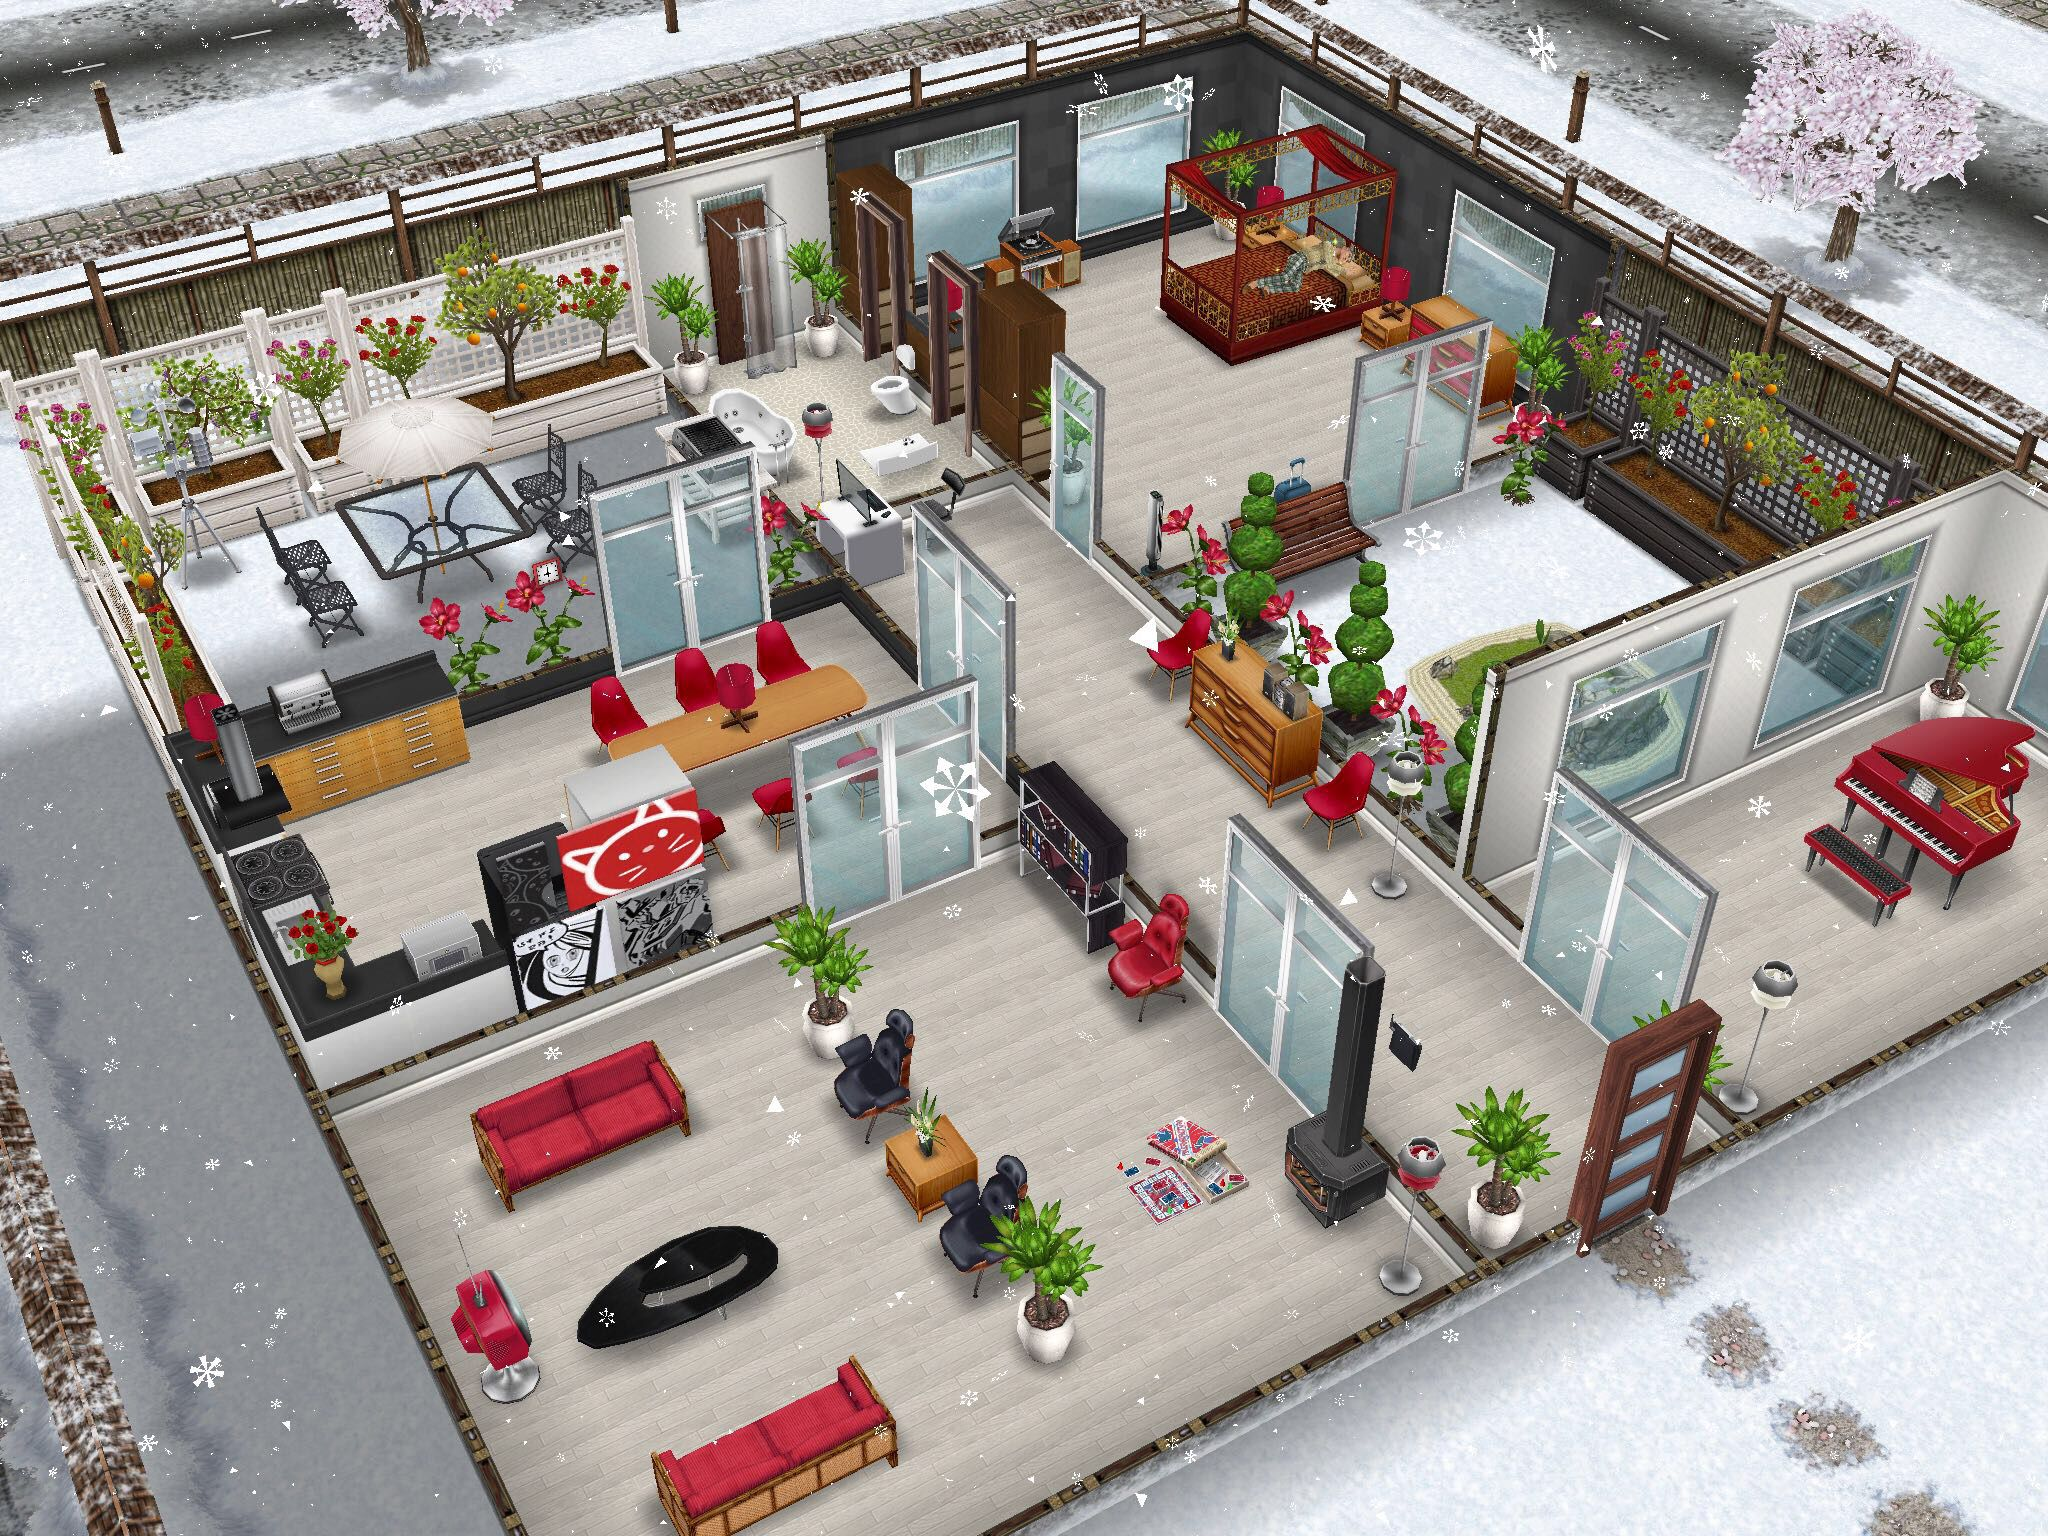 House design the sims freeplay - Sims Freeplay House Design With Red Furniture